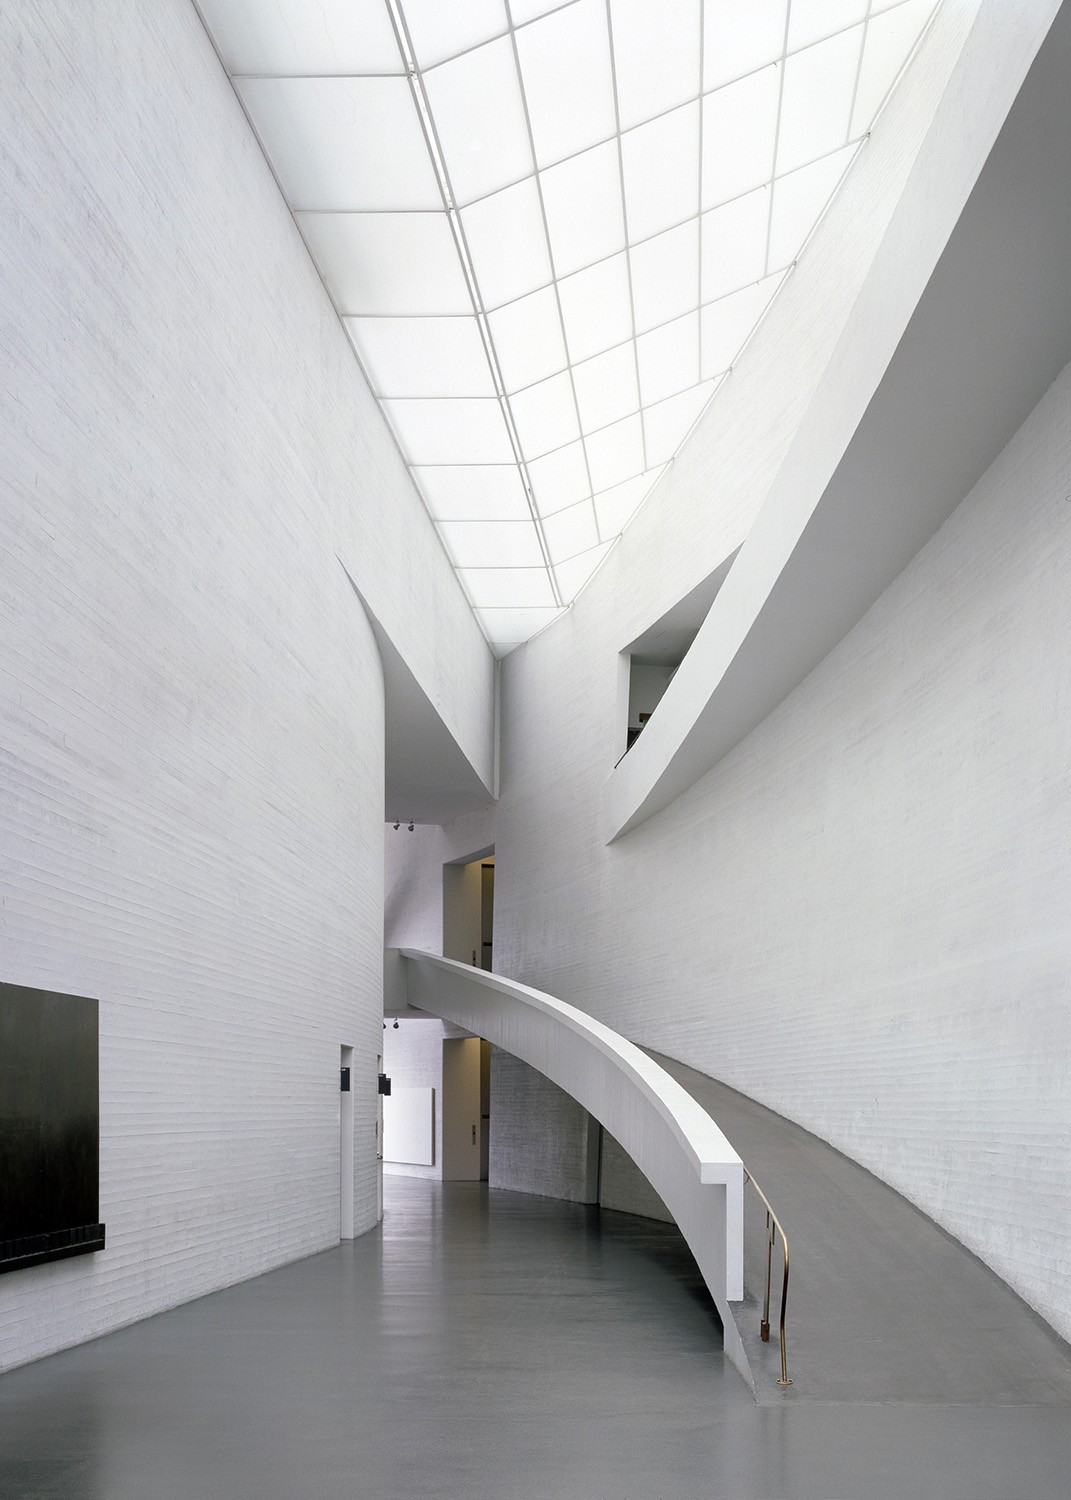 https://s3.us-east-2.amazonaws.com/steven-holl/uploads/projects/project-images/StevenHollArchitects_Kiasma_LobbyPhotoRecent_WV.jpg